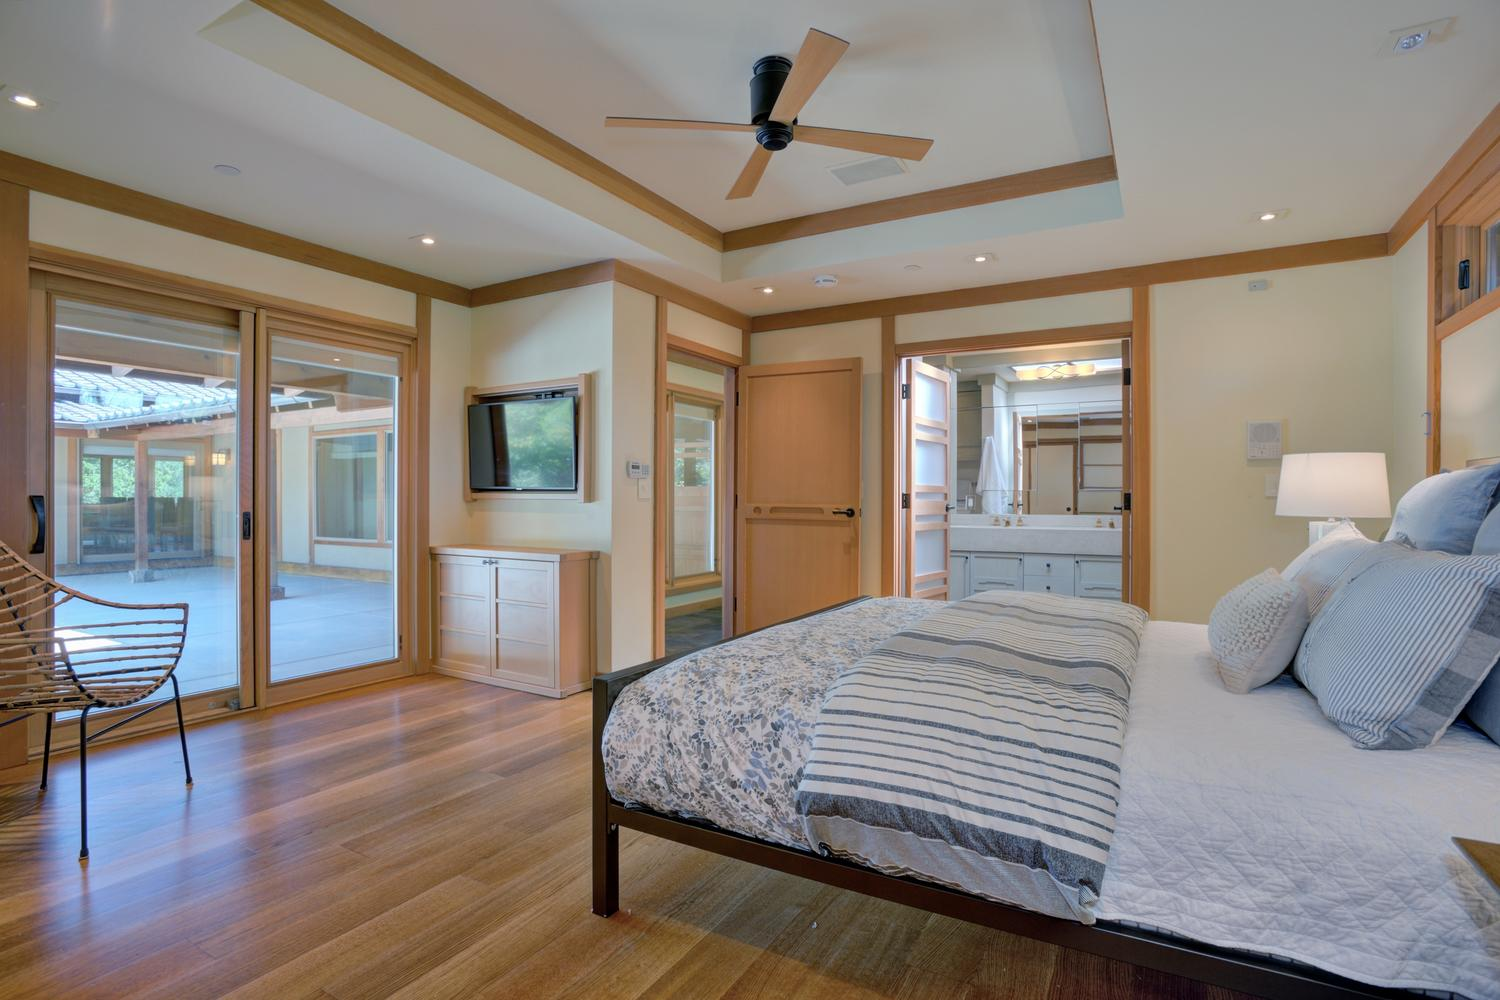 573 More Ave Los Gatos CA-large-019-13-Master Bedroom View-1500x1000-72dpi.jpg